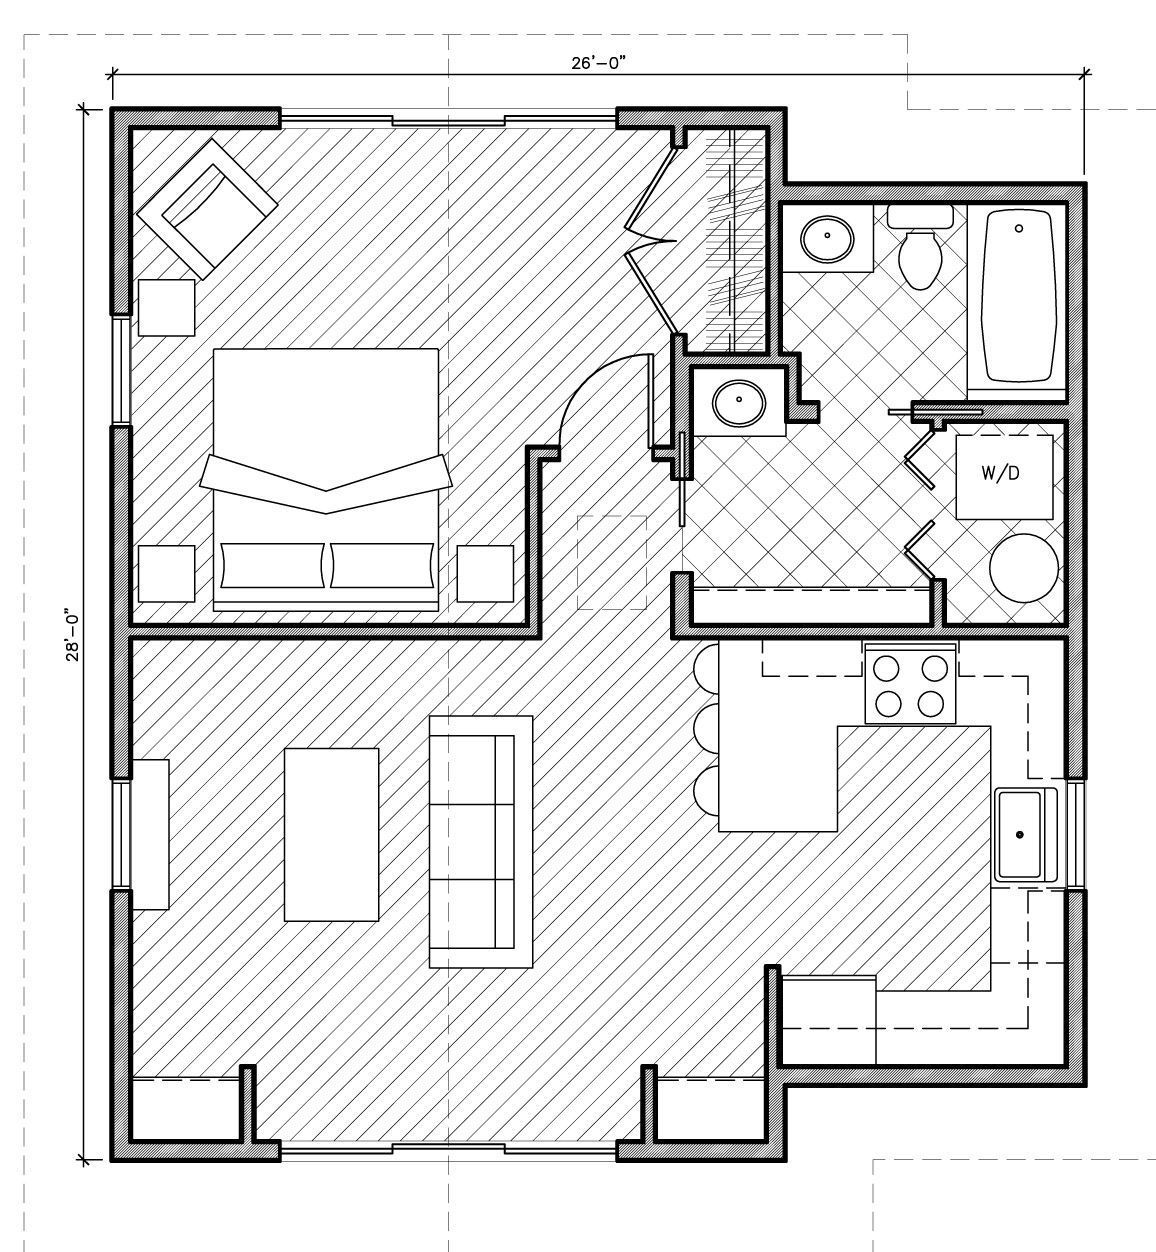 Small House Plans Under 1000 Sq Ft With Garage Tinyhomeplanssmallcottages One Bedroom House Plans One Bedroom House Square House Plans